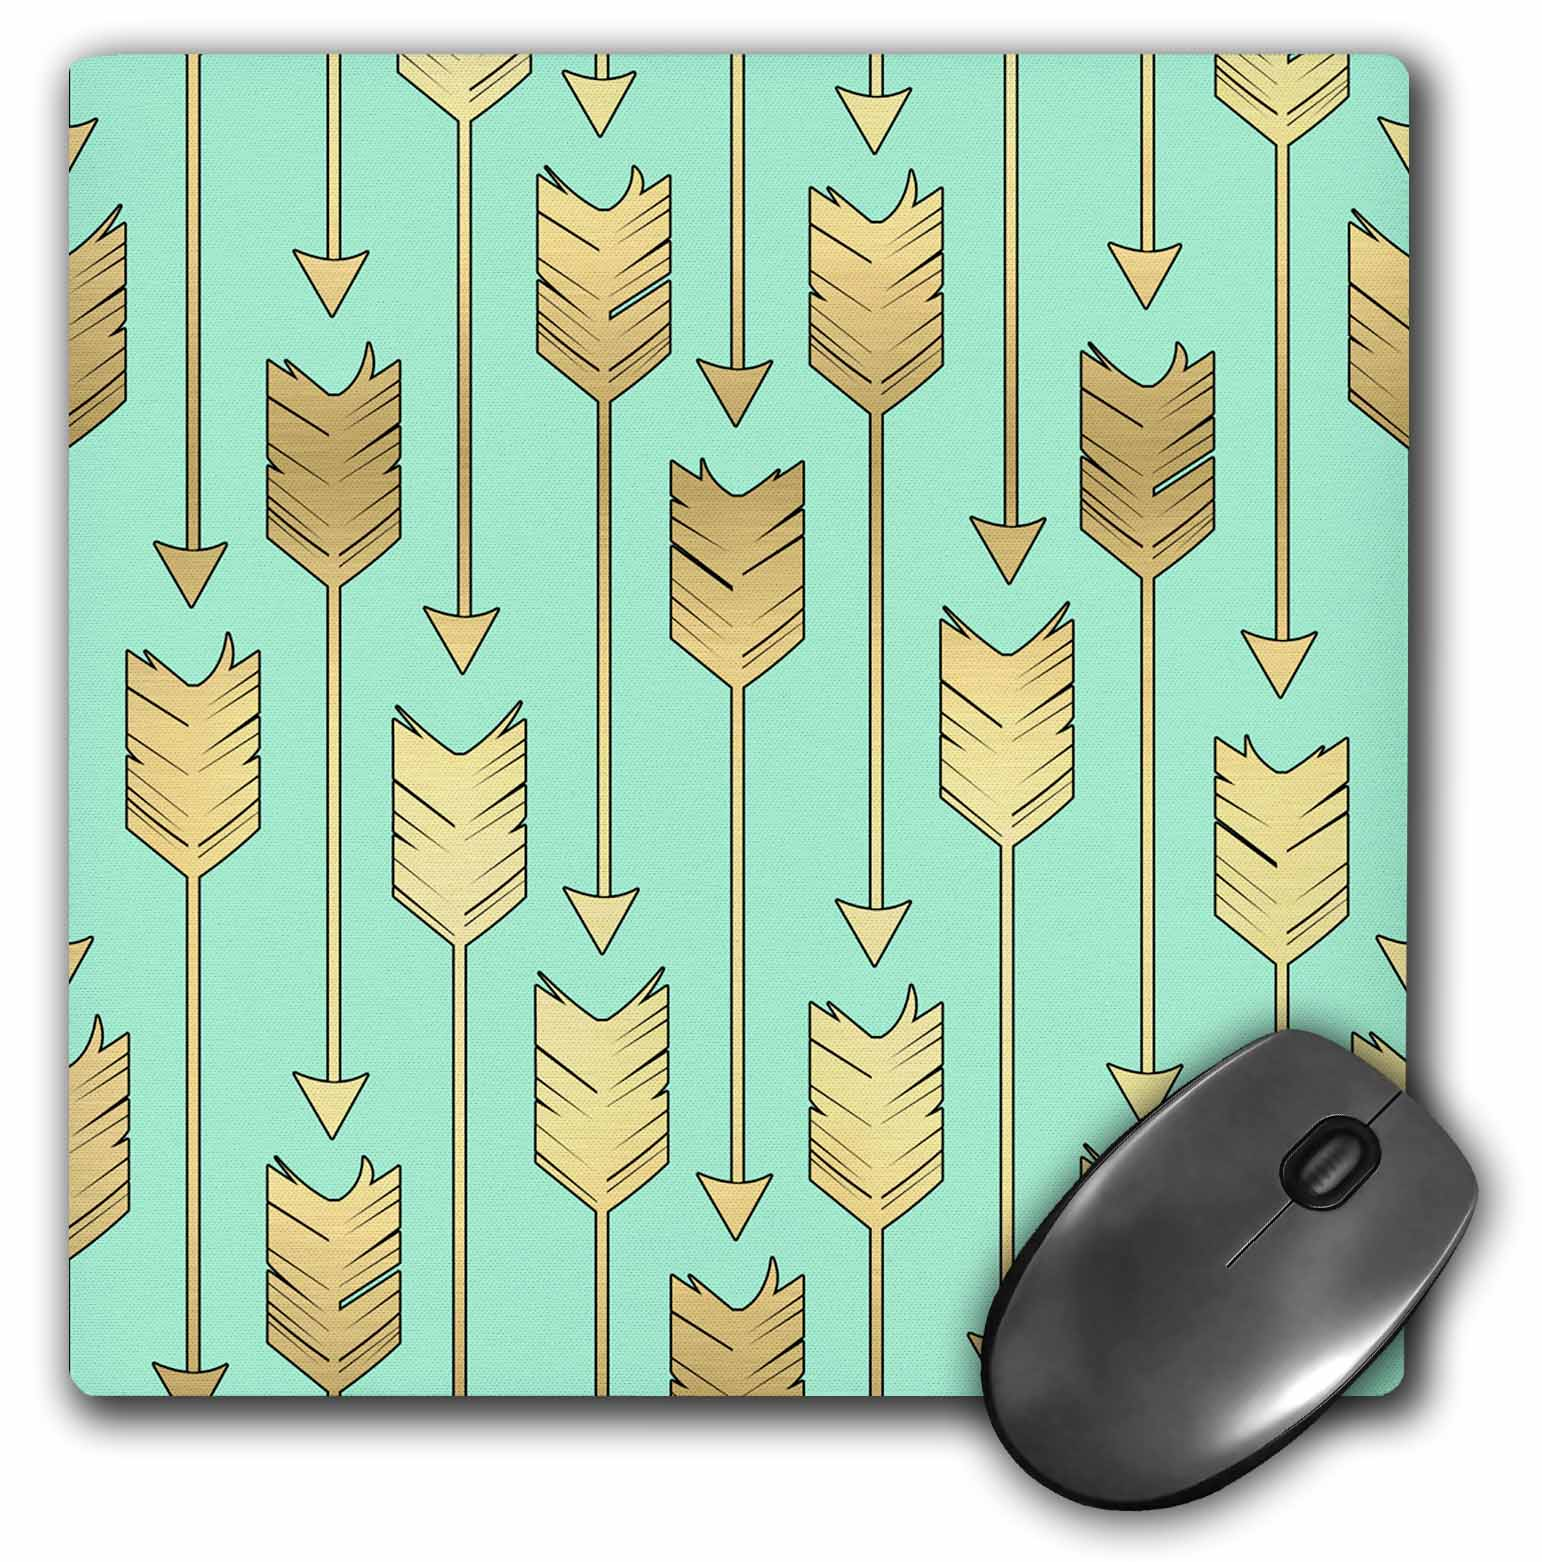 3dRose Mint and Gold Arrows Pattern, Mouse Pad, 8 by 8 inches by 3dRose